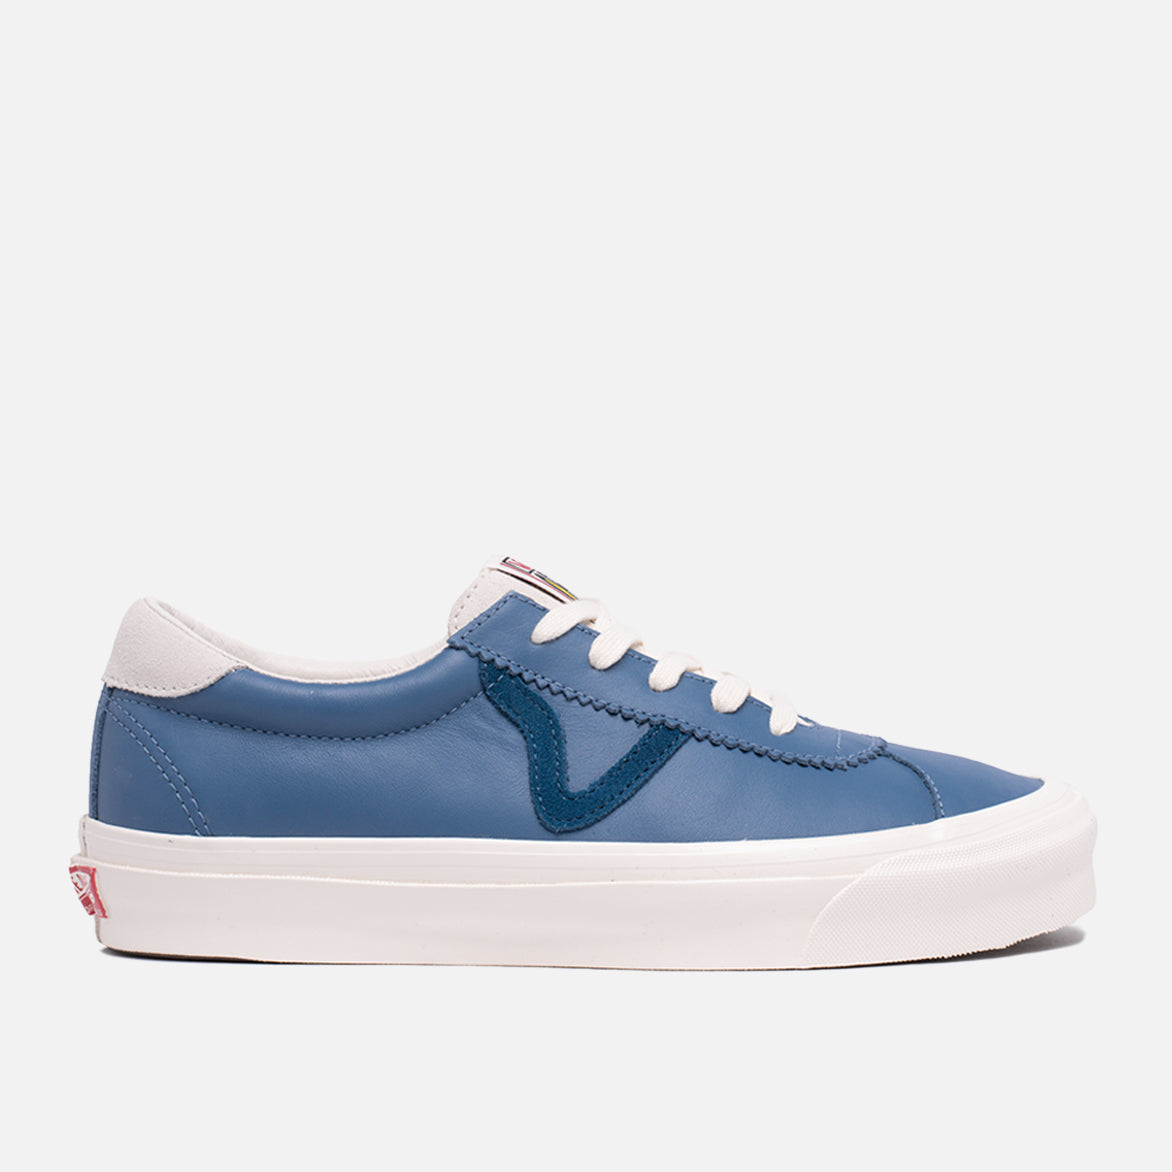 VANS VAULT OG EPOCH LX - CORONET BLUE / SAILOR BLUE